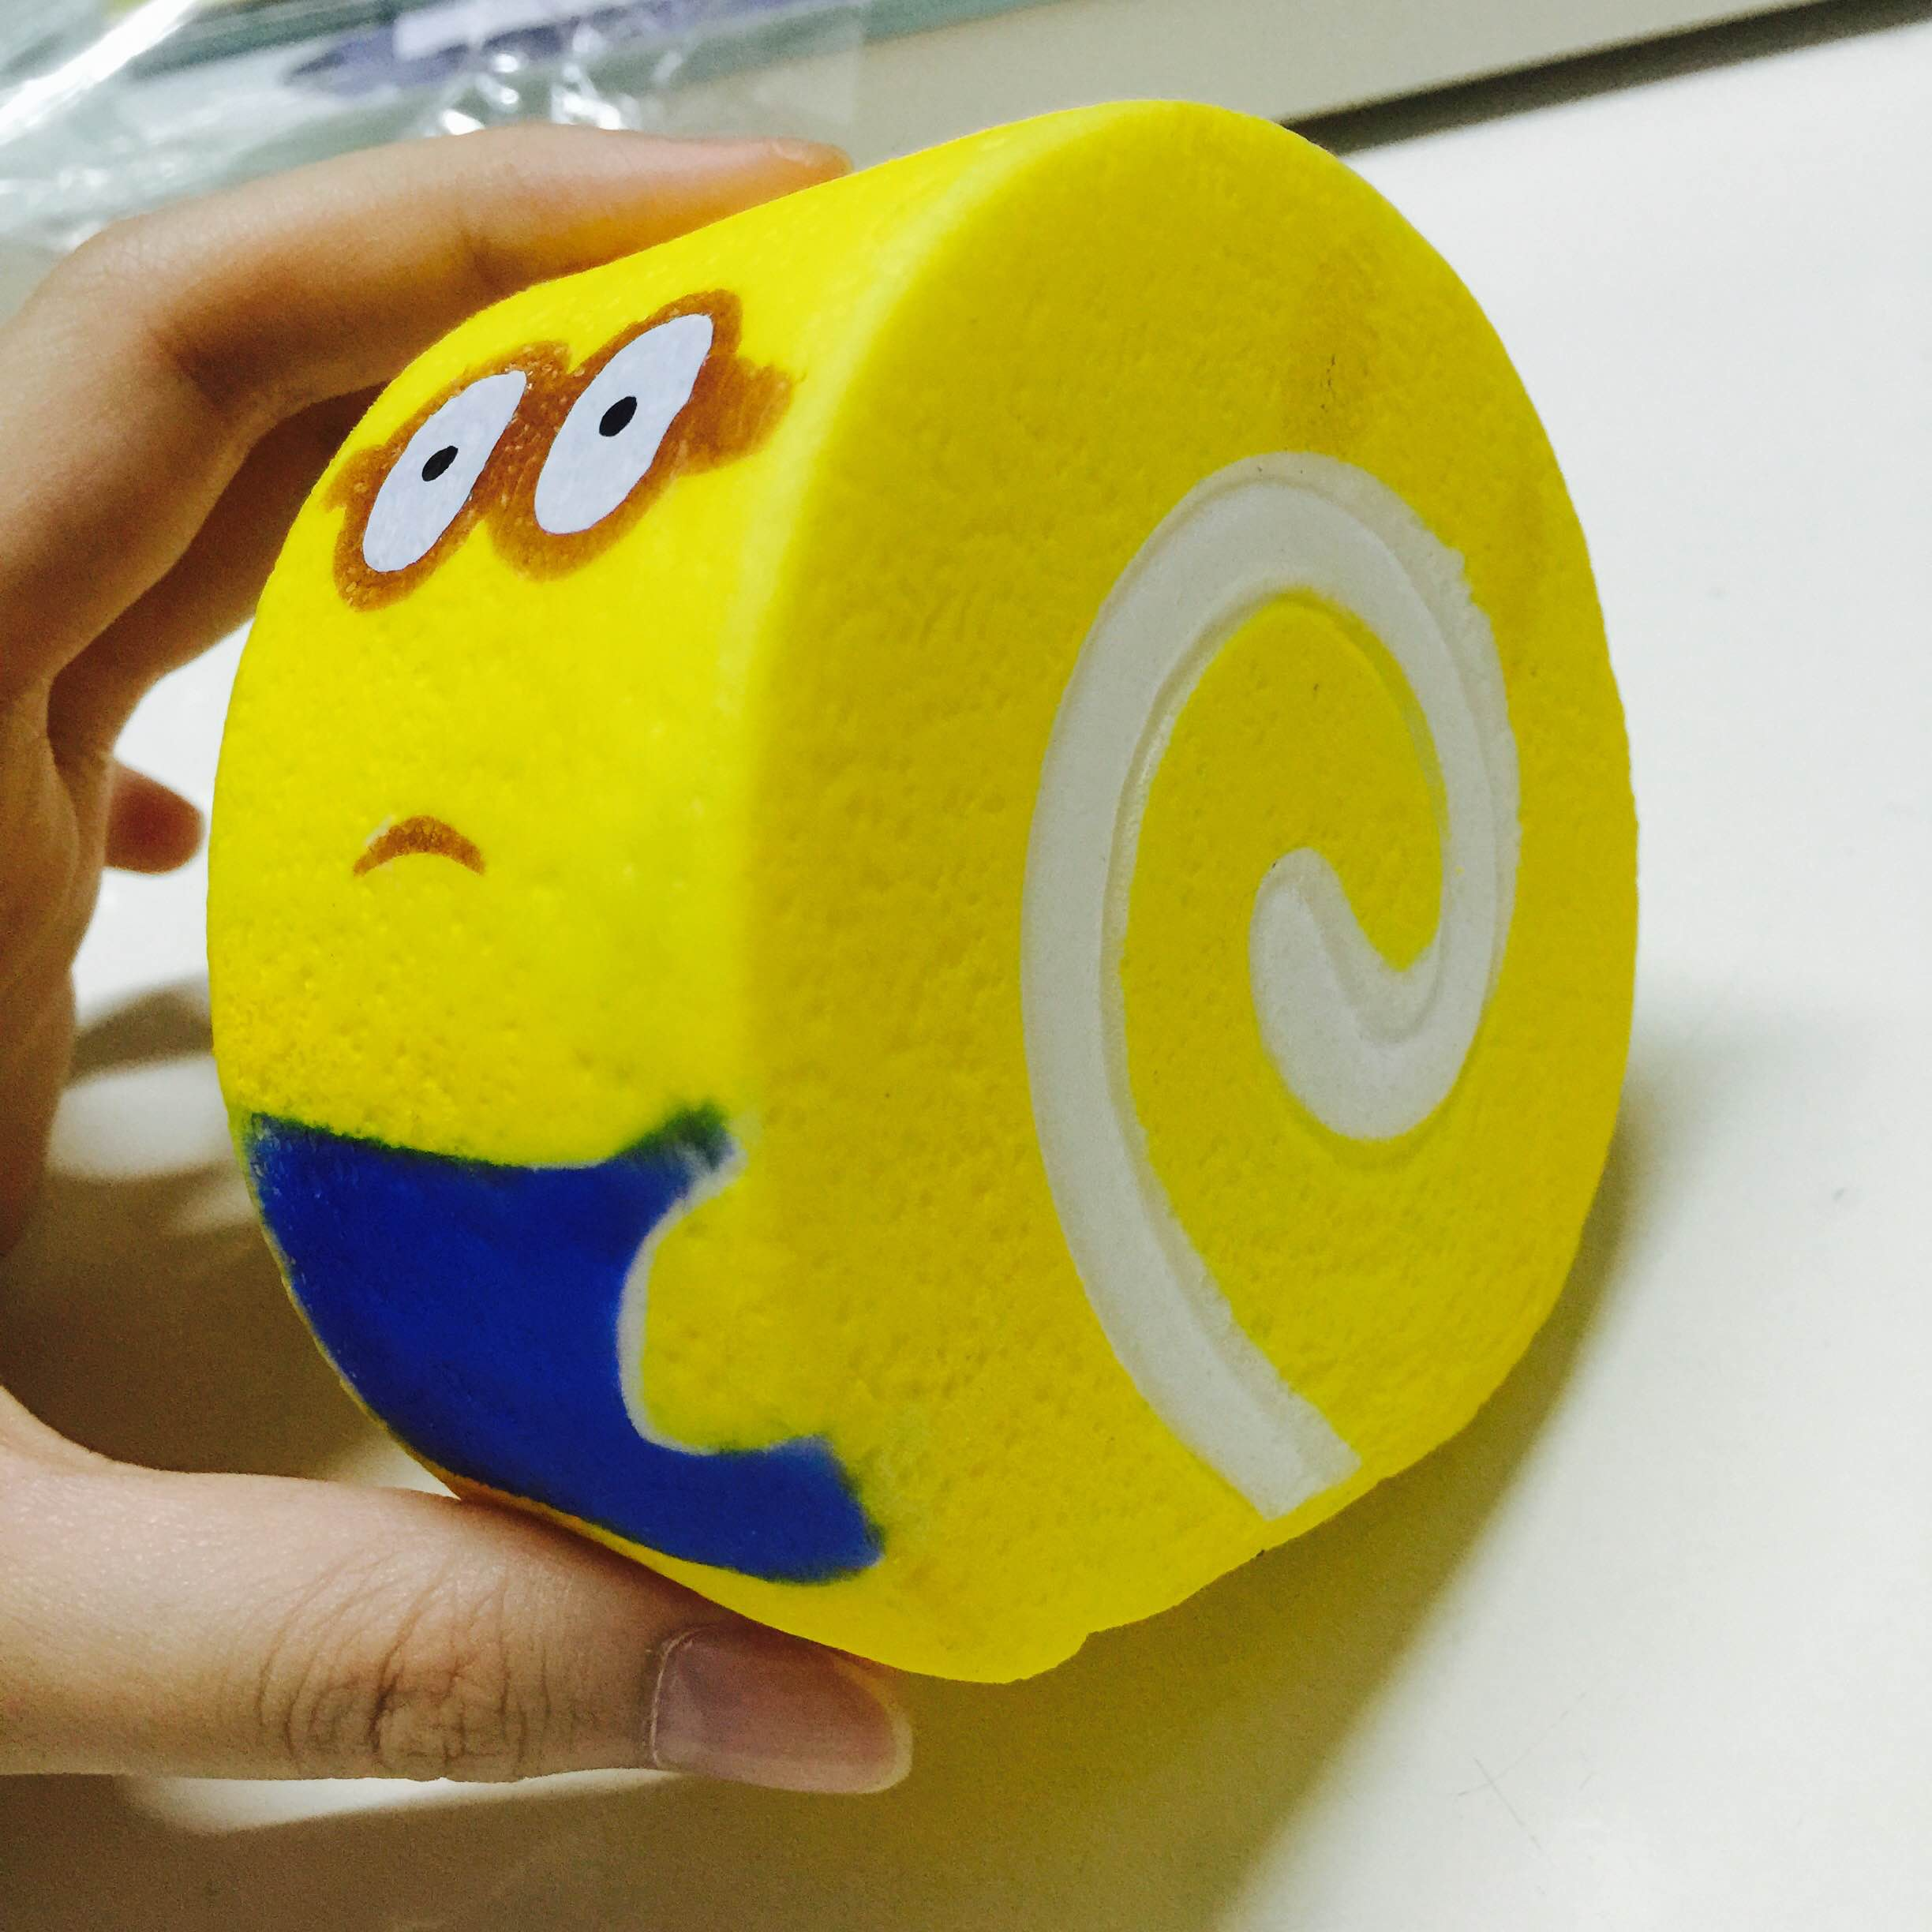 Squishy Eyes : ~SquishyStuff~ Cute Large Minion Two-Eyes Cakeroll Squishy Online Store Powered by Storenvy